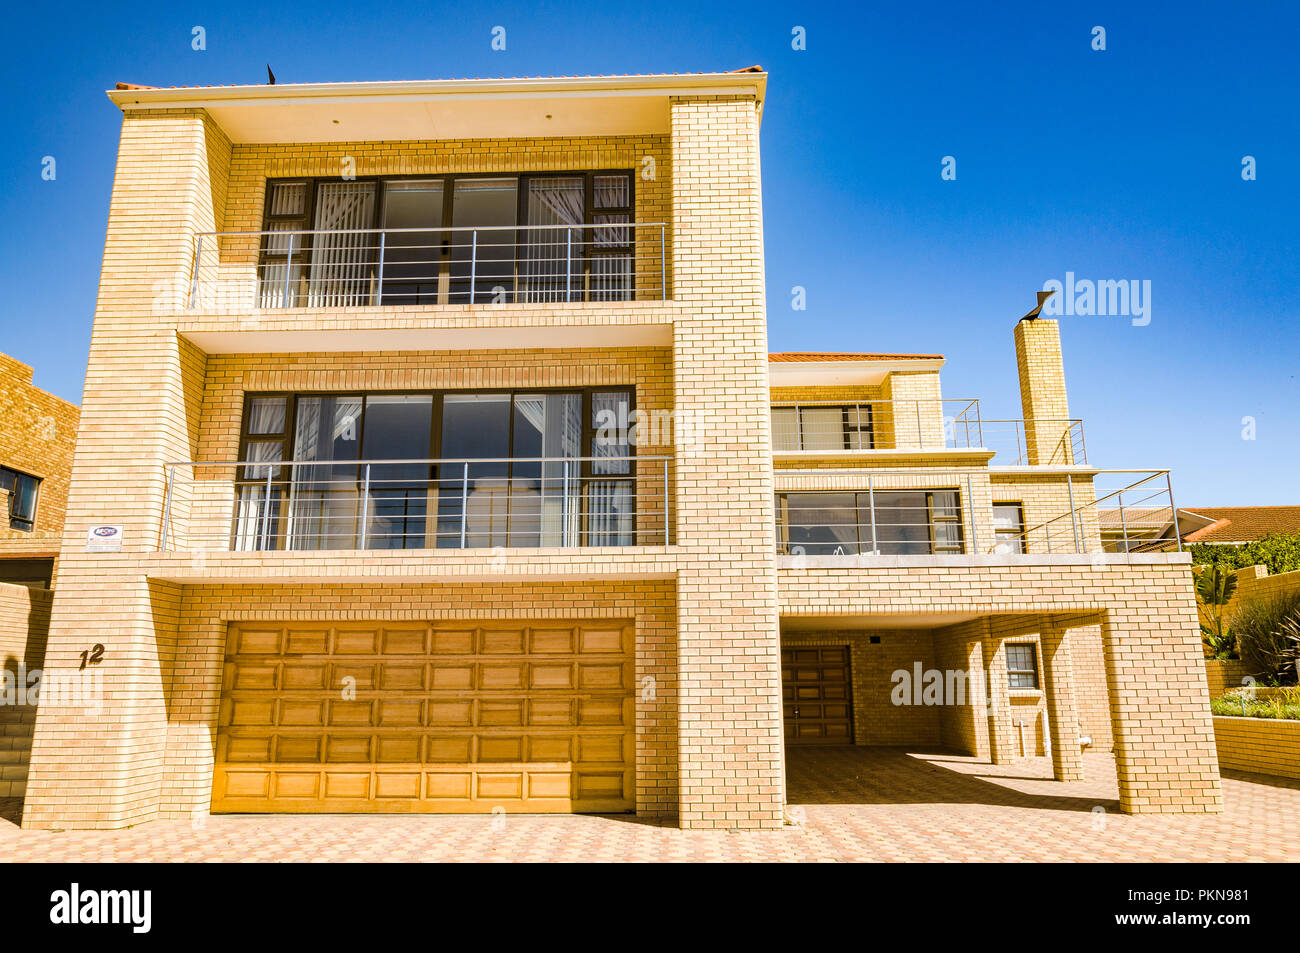 Yellow Brick Stark Modern House In Mossel Bay South Africa Stock